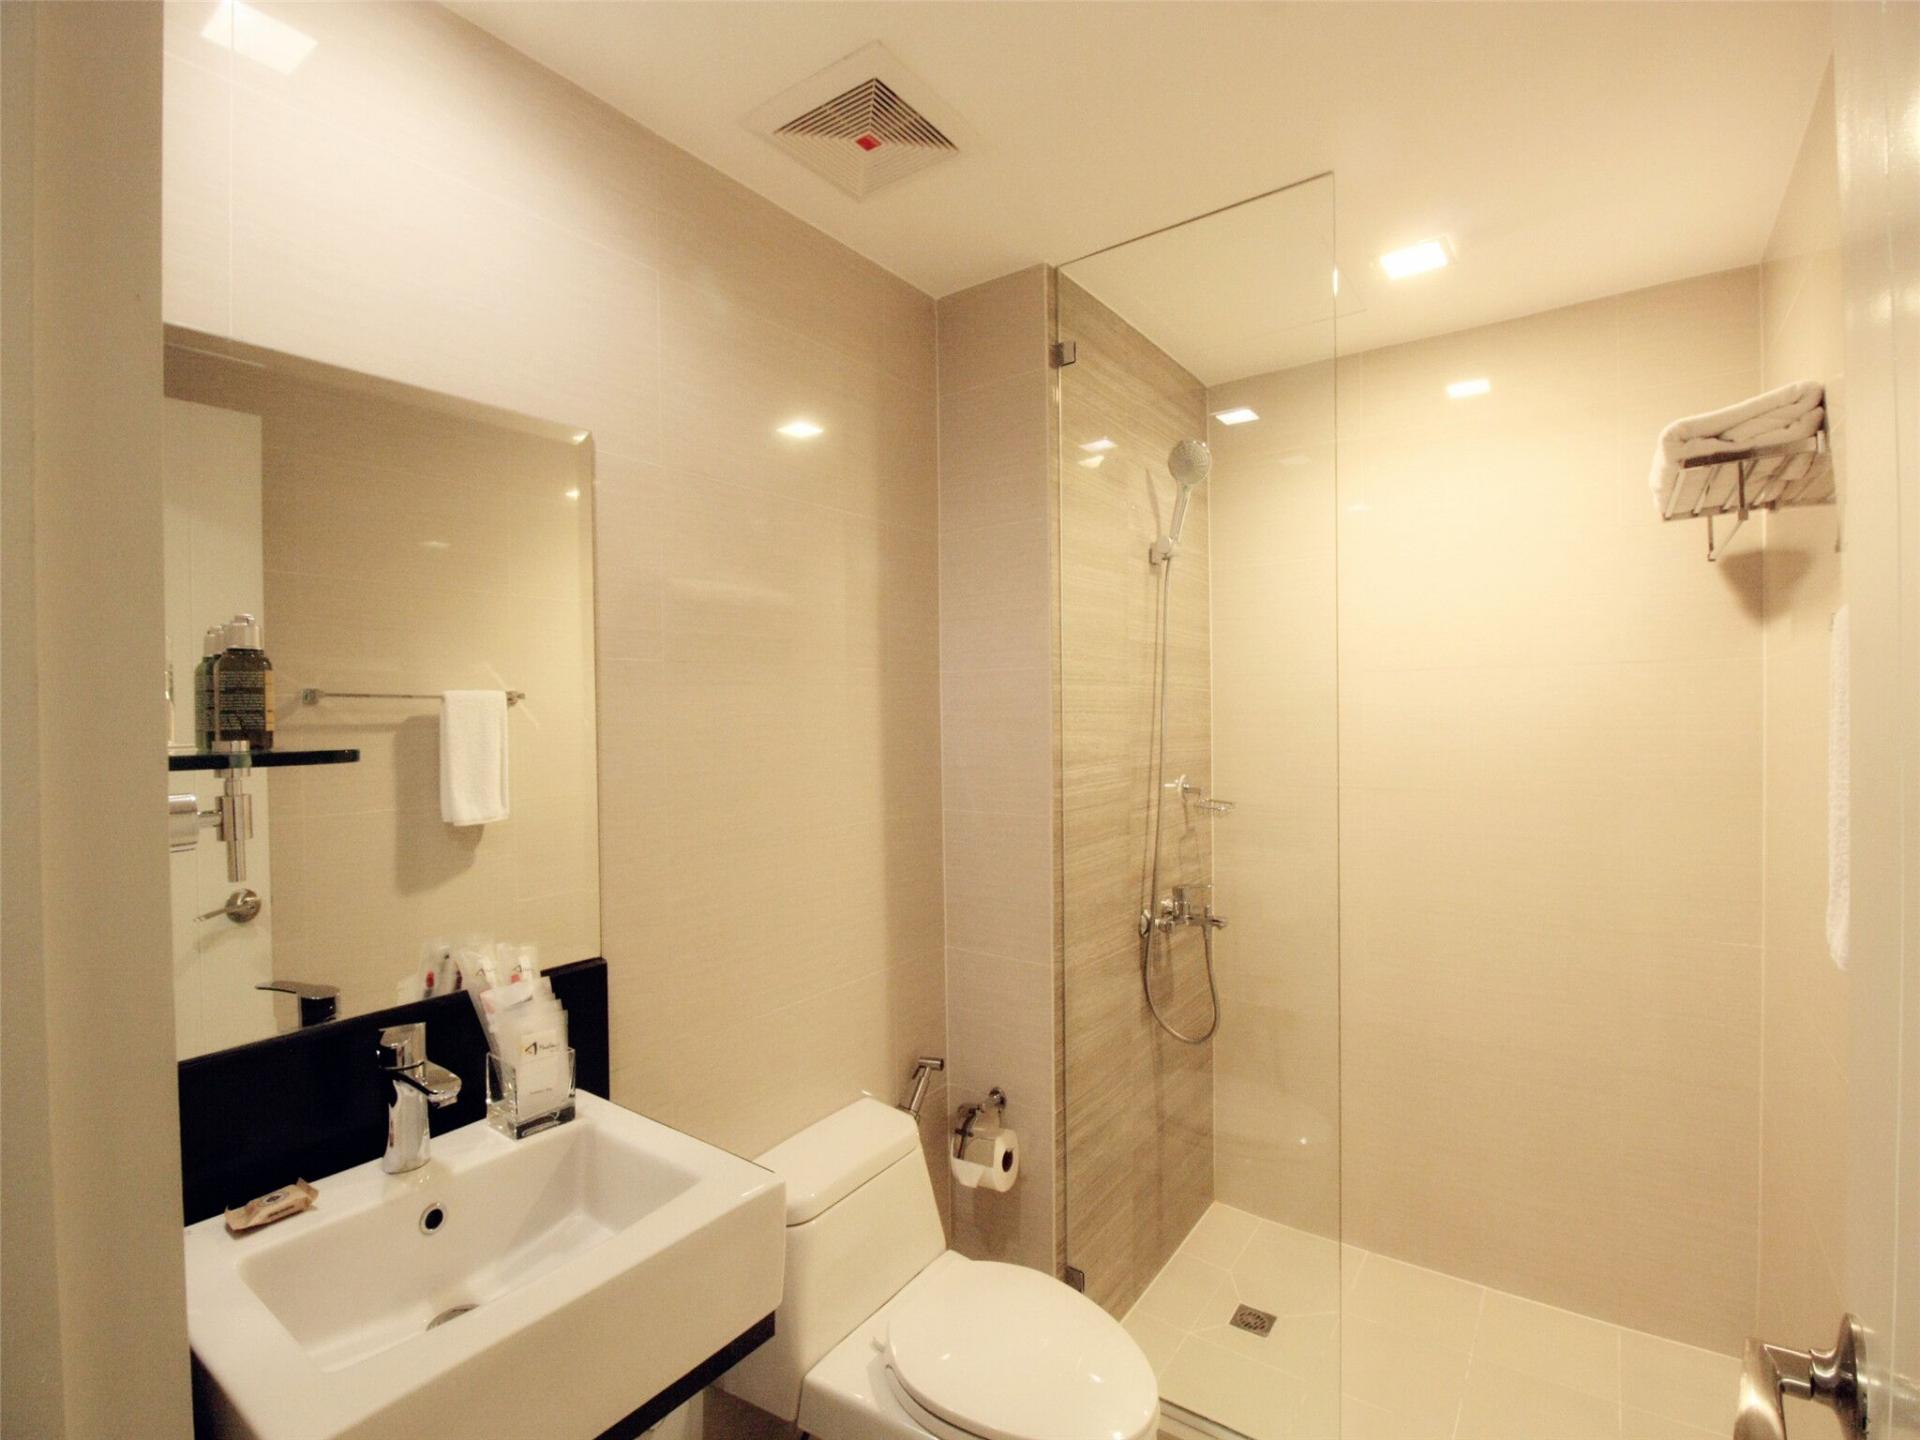 Bathroom at Alessandro Tower Apartments